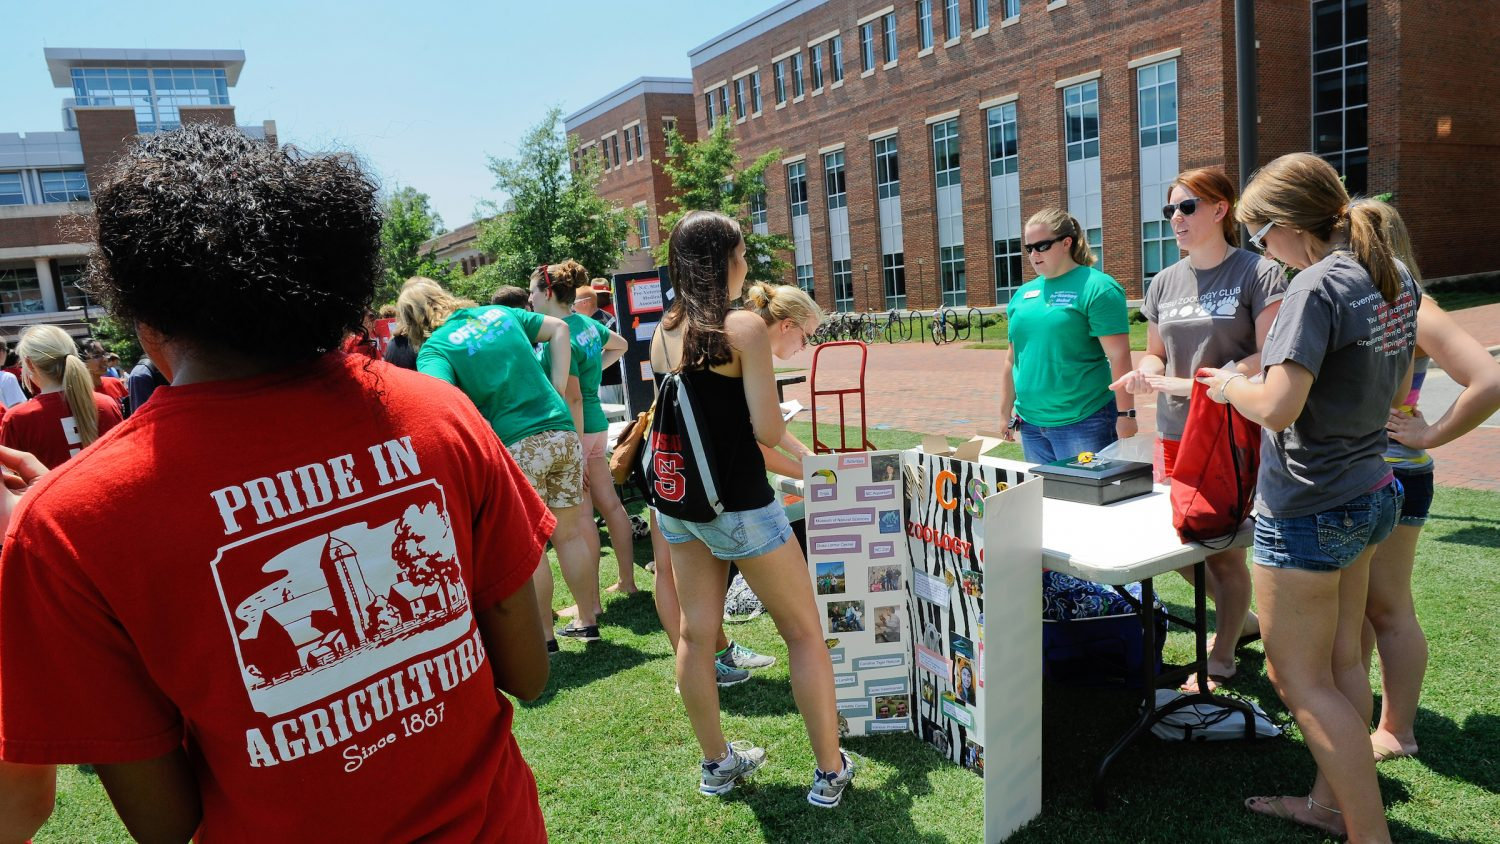 Students check out poster board displays at large gathering on campus green.